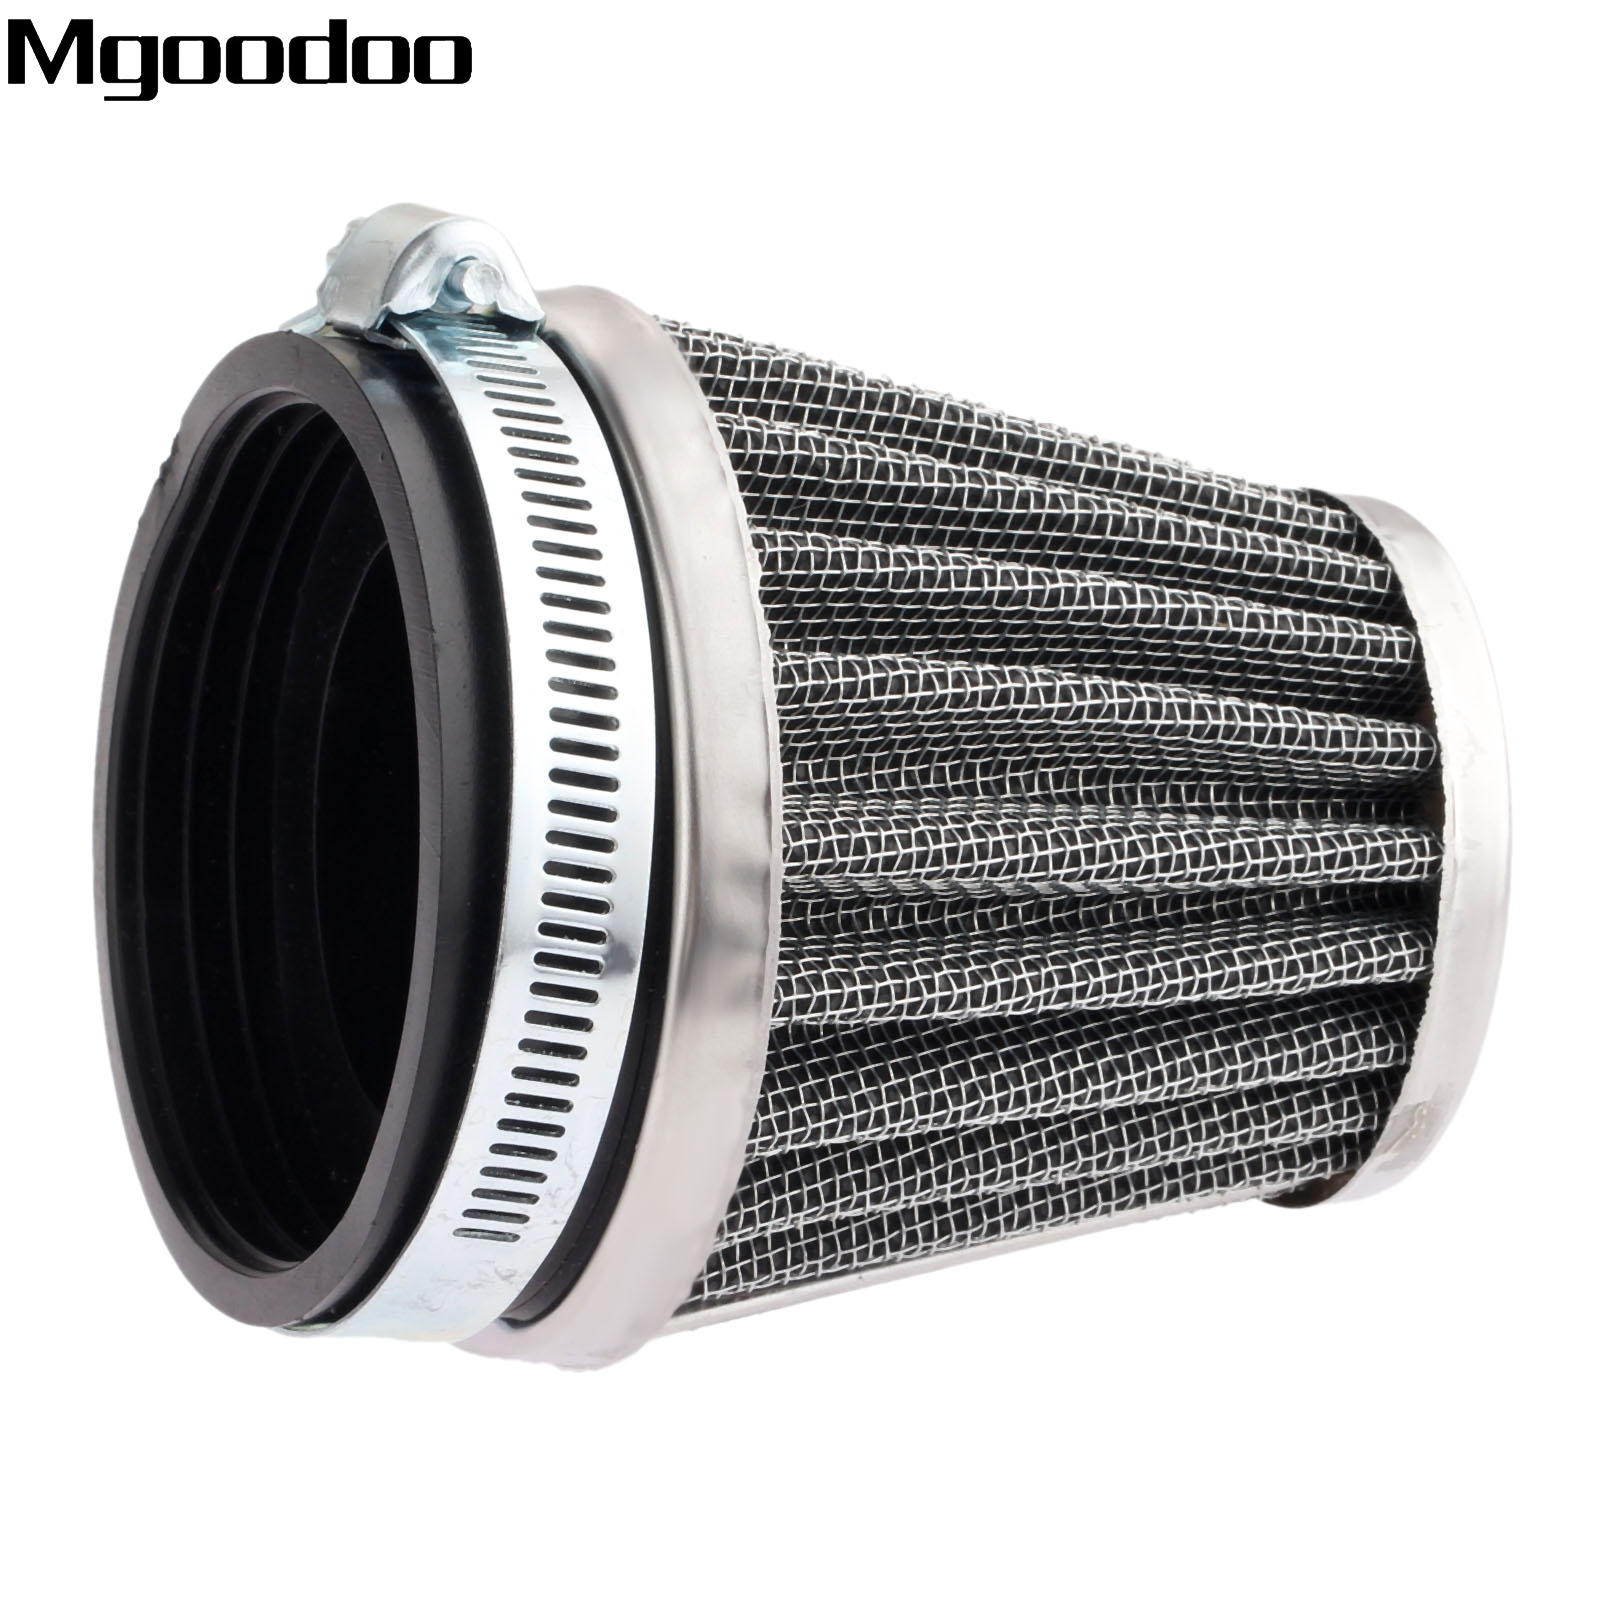 Mgoodoo 60mm Double Layer Steel Air Filter Gauze Clamp-on Cleaner Pods For Honda Kawasaki ATV Scooter Minibike Dirt Bike